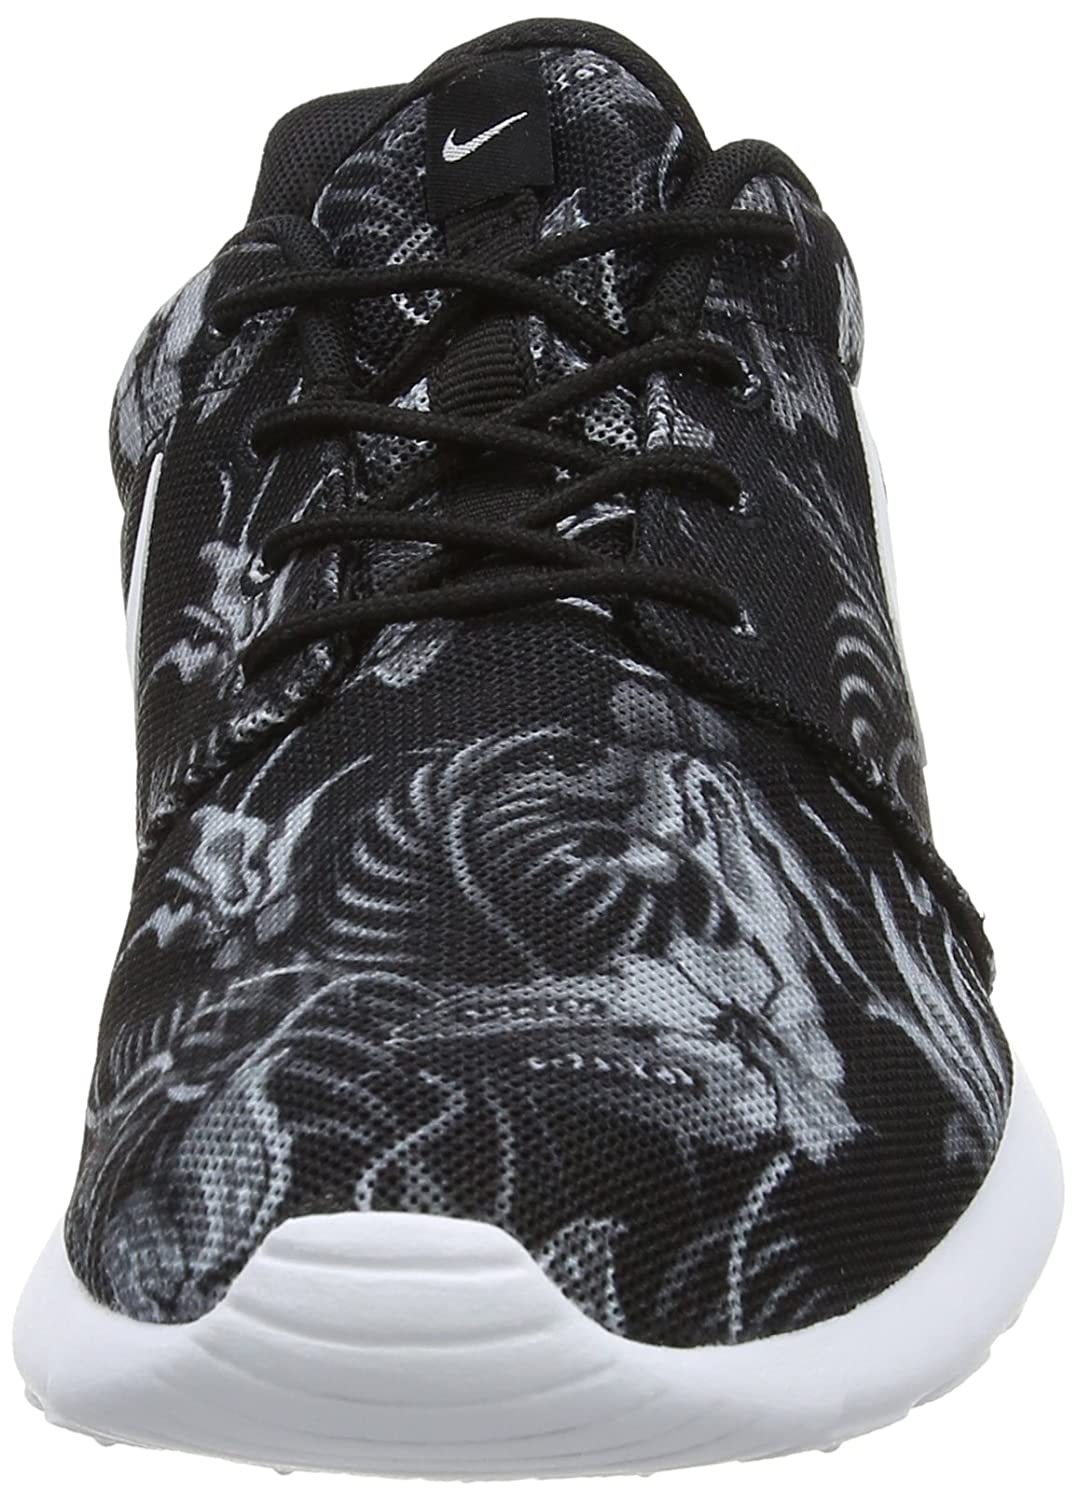 NIKE Mens Air Zoom B005A02L9S Structure 19 Running Shoes B005A02L9S Zoom Small|Black c04957